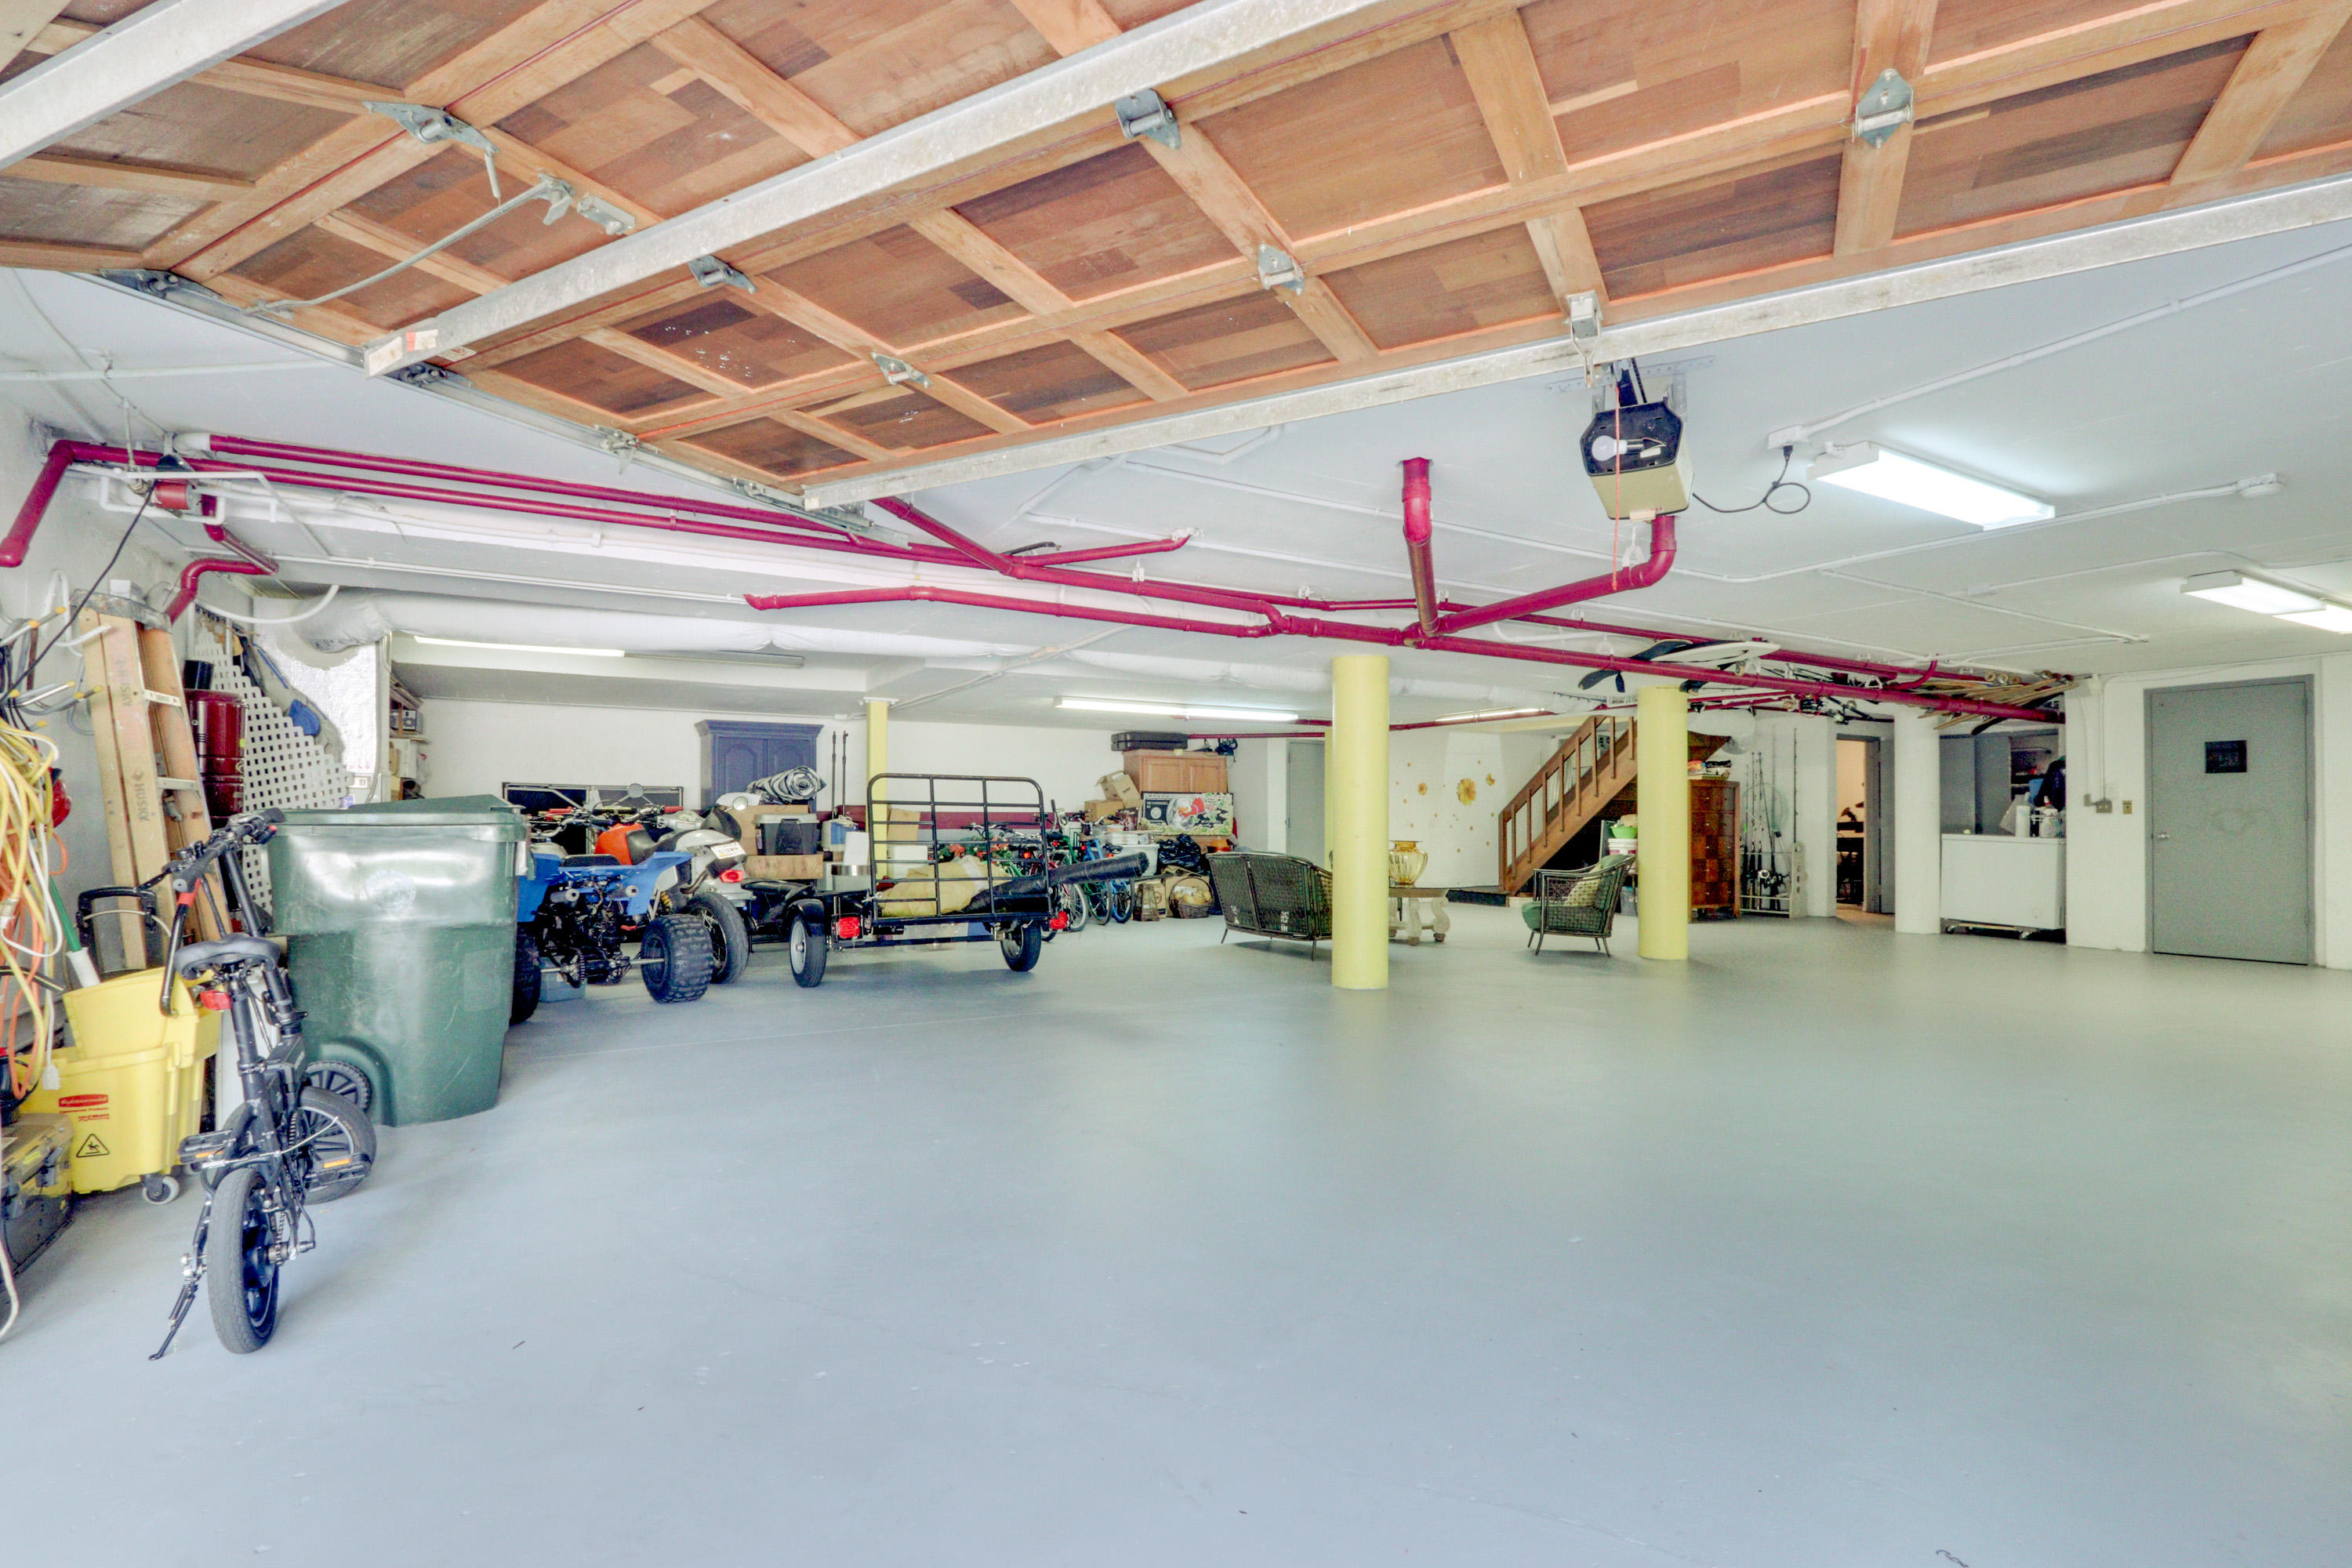 Eight Car Garage for Collection